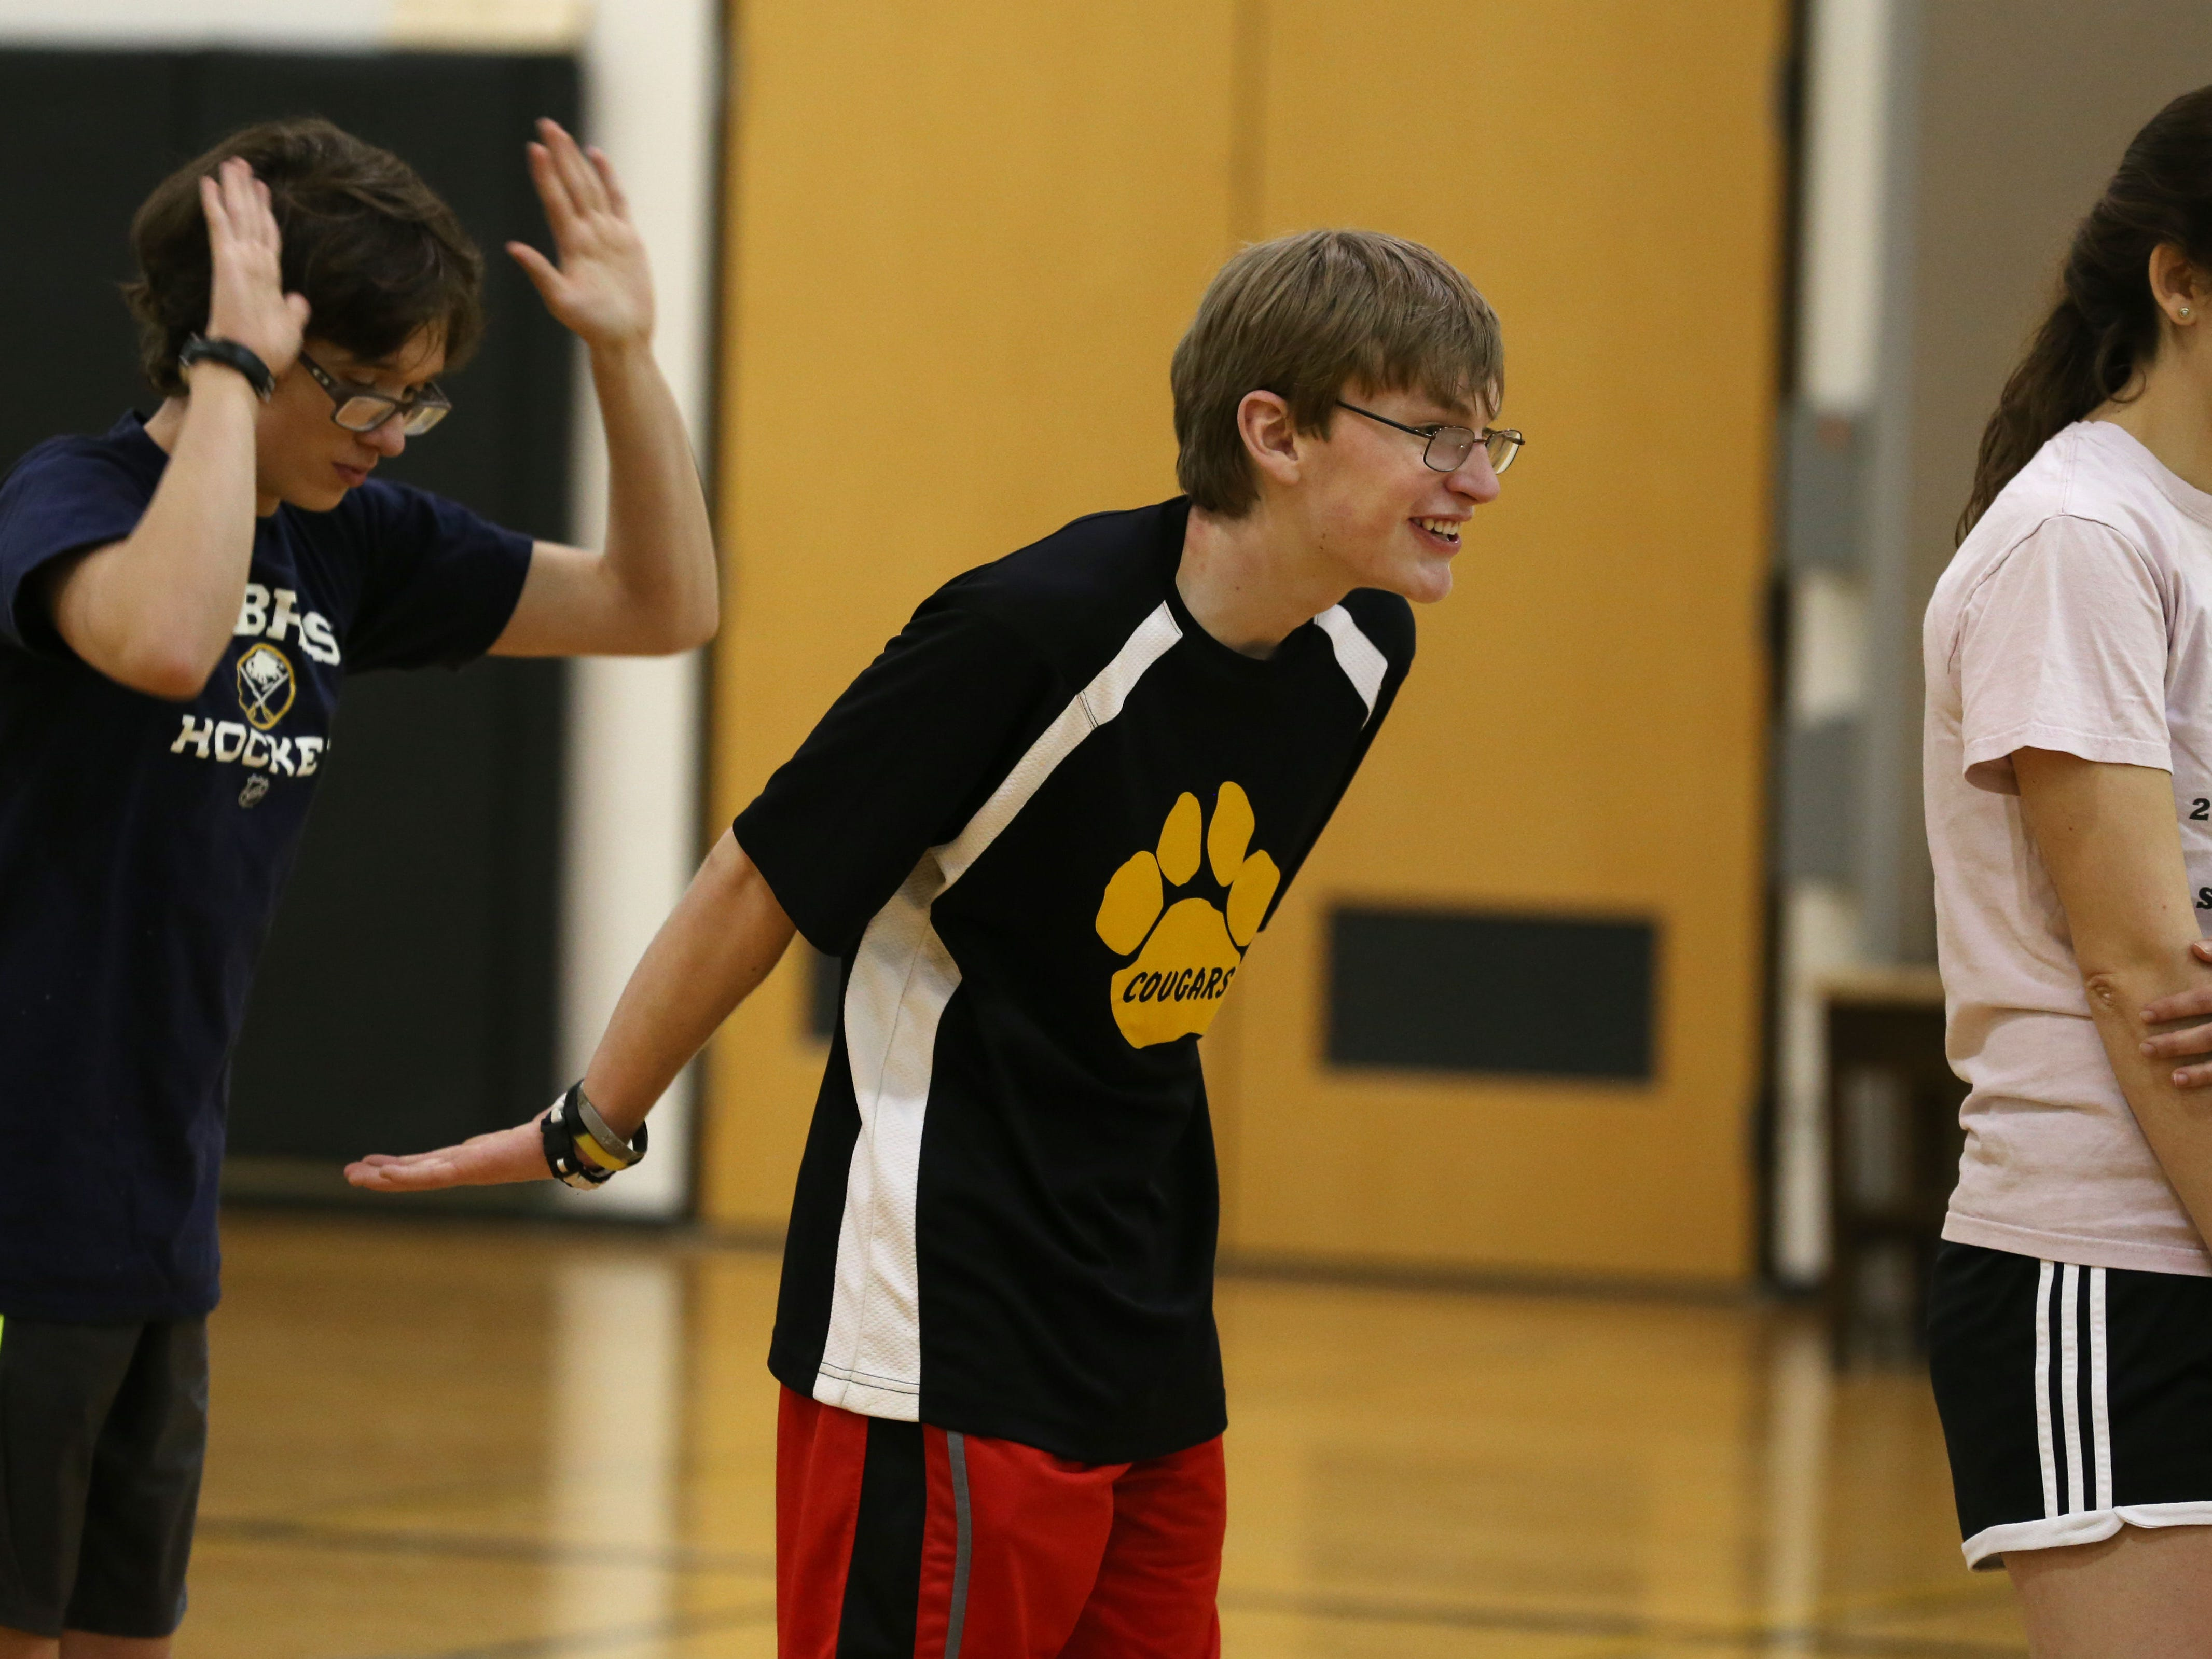 Gavin Germonto and teammate Skyler Smith give each other props on free throw shooting during the second practice for Honeoye Falls-Lima's unified basketball team.